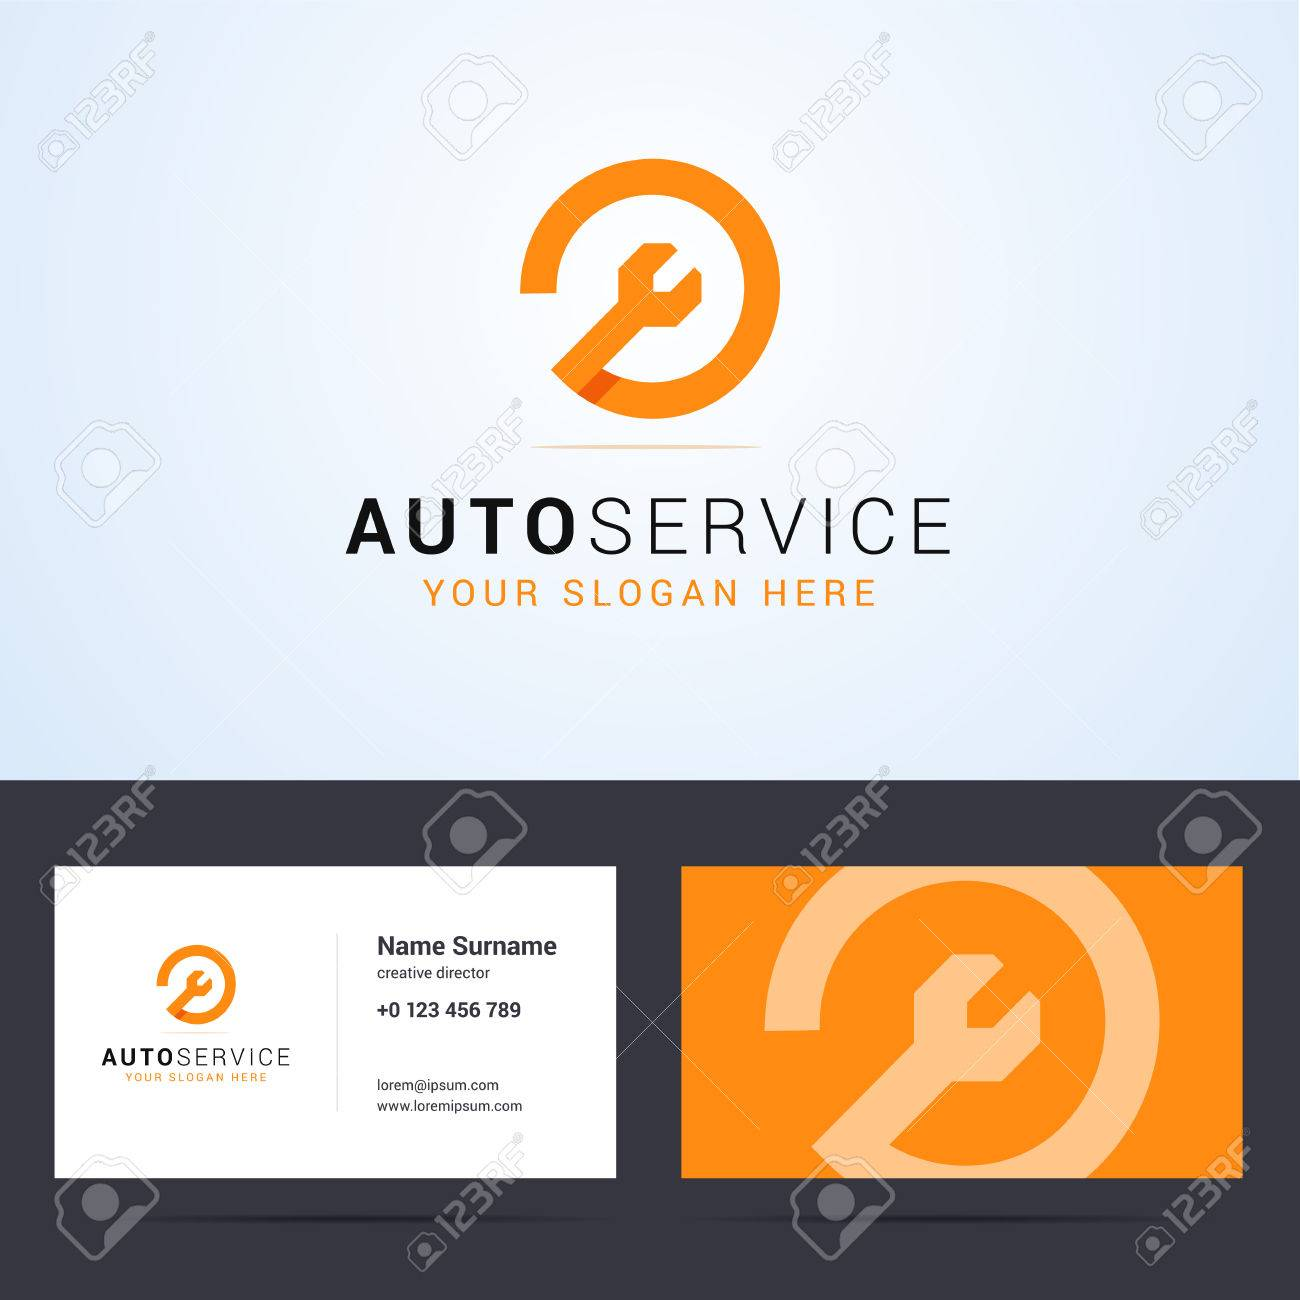 Logo and business card template layout for auto service repair logo and business card template layout for auto service repair service system administrator colourmoves